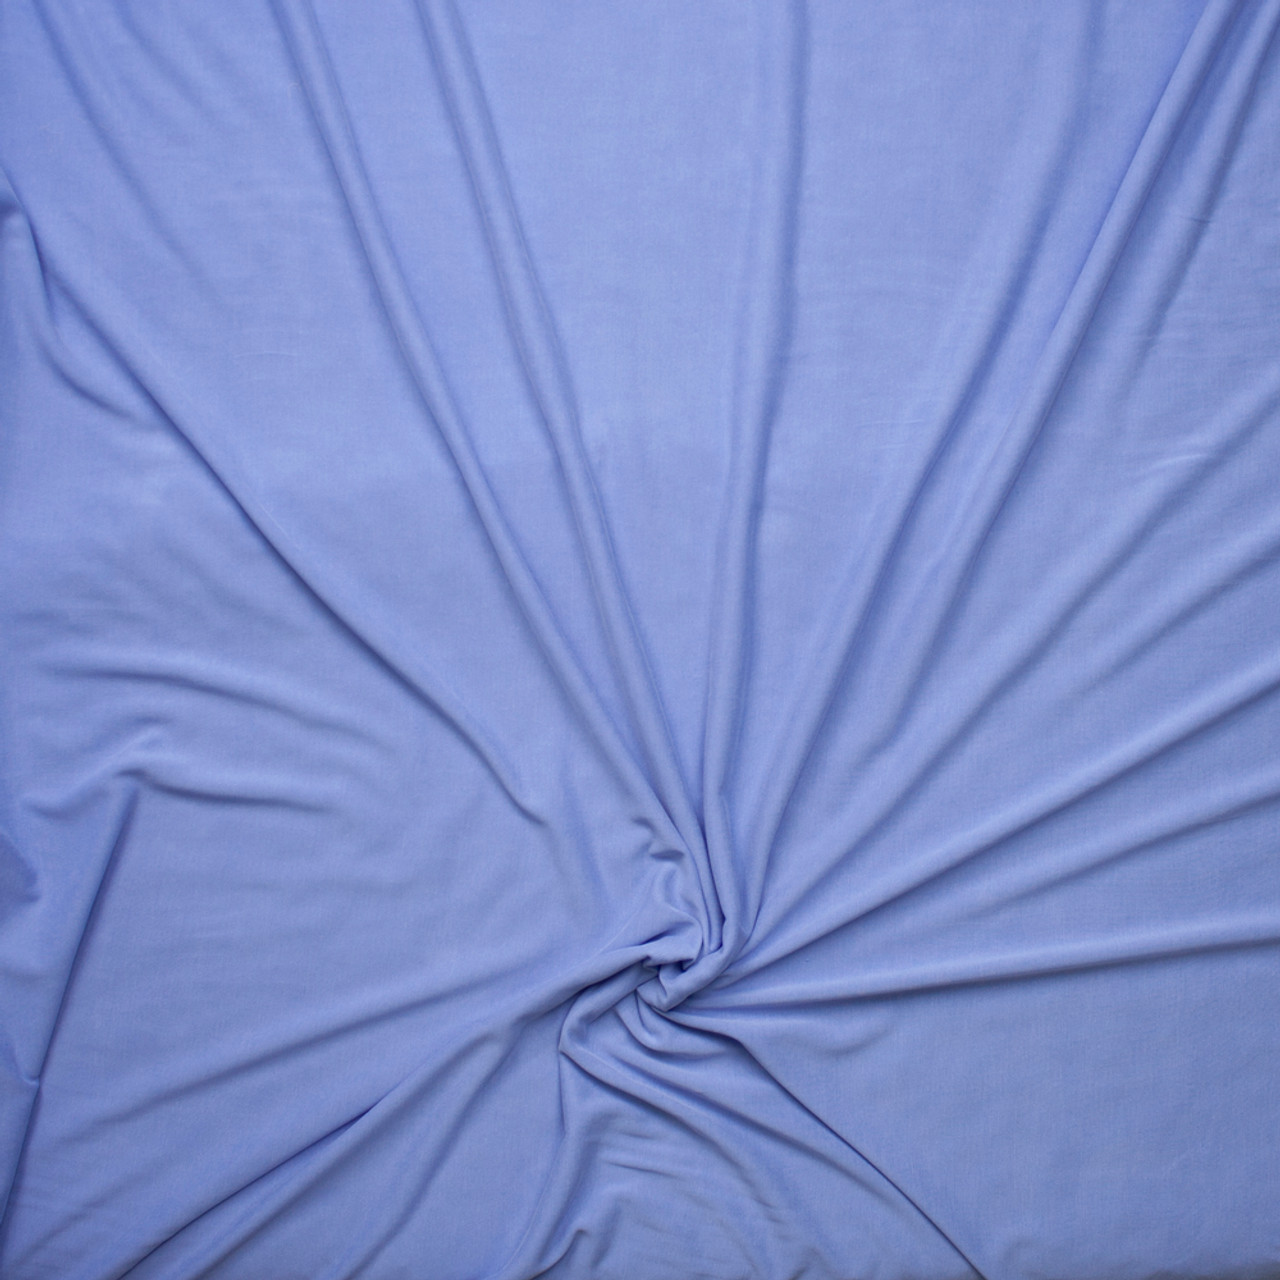 19a3d35ef01 ... Sky Blue Brushed Poly/Modal Jersey Knit Fabric By The Yard - Wide shot